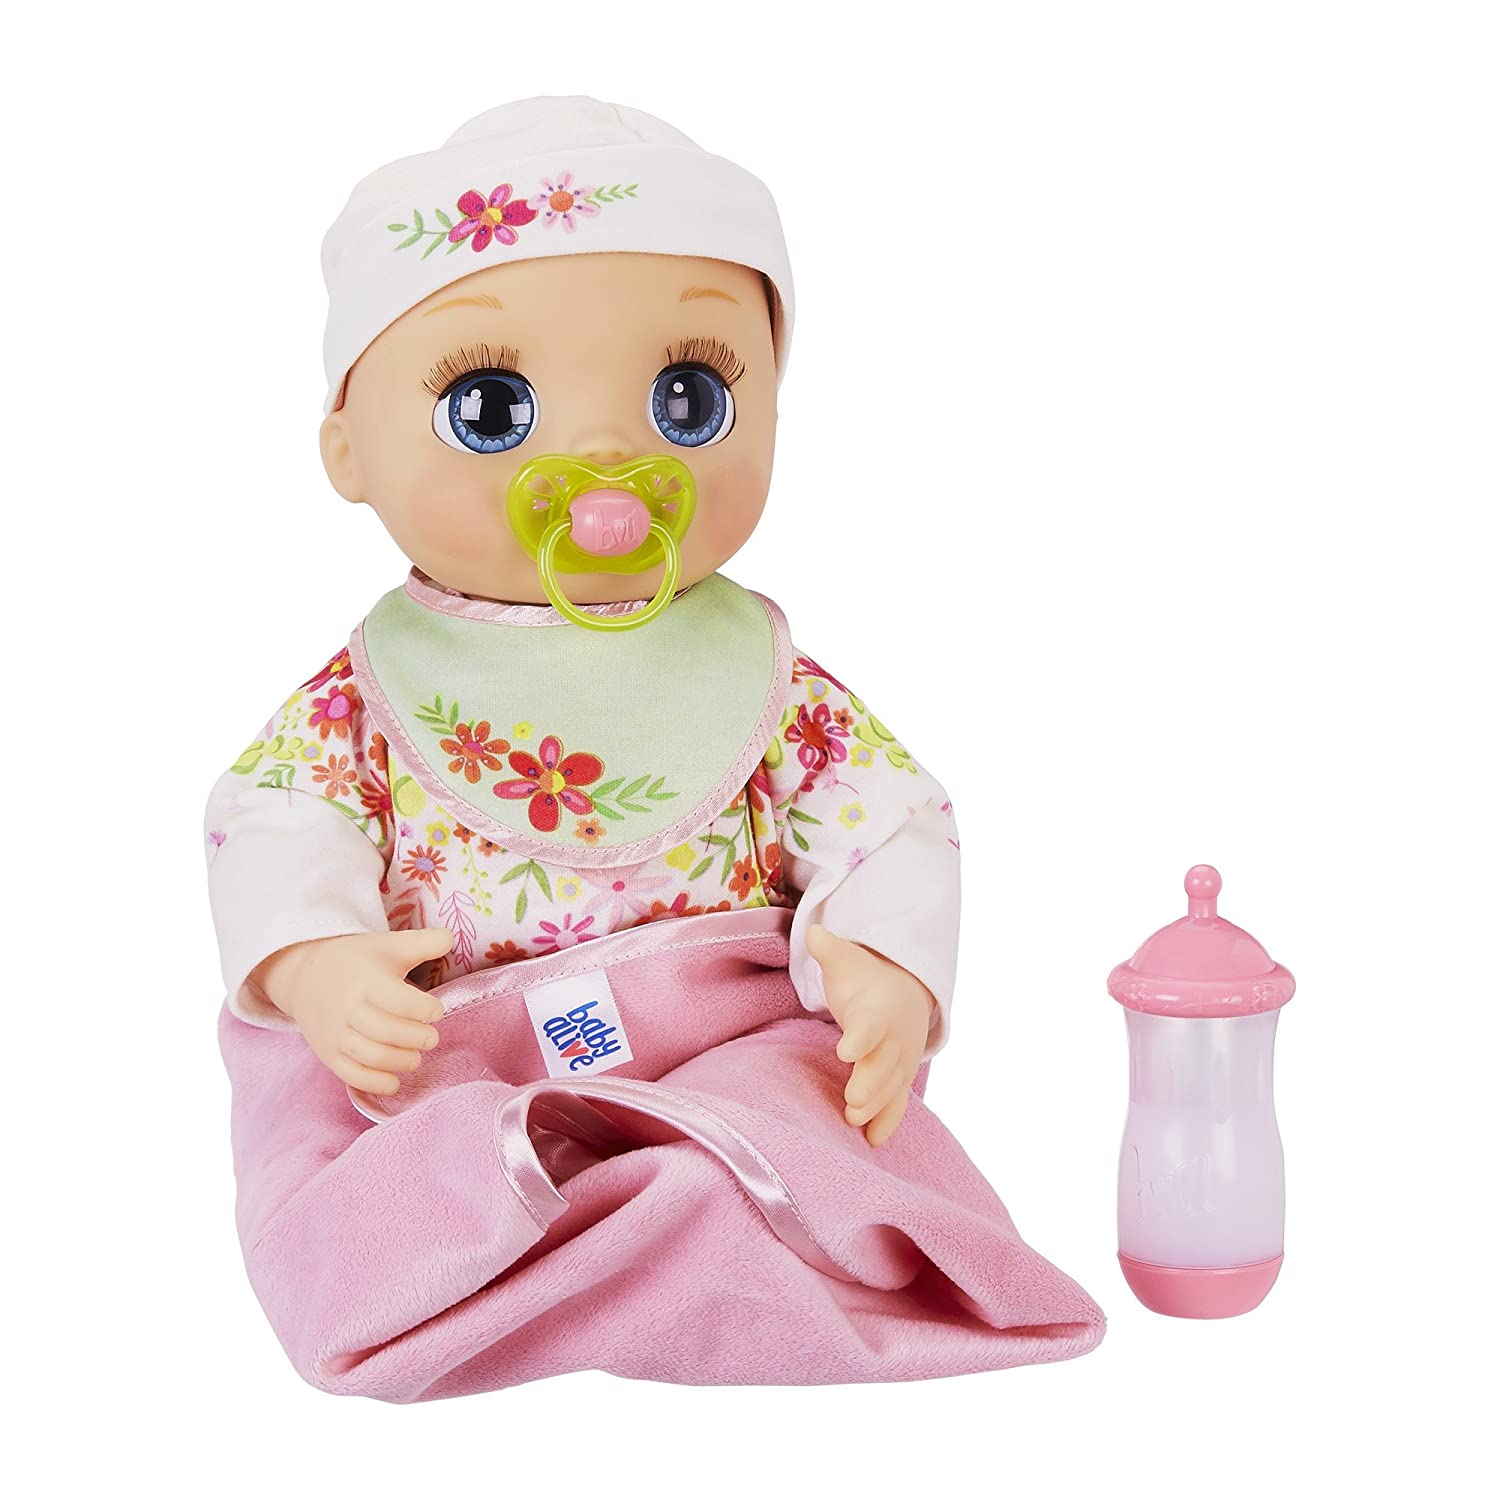 Realistic Baby Doll Lifelike Doll Cry Laugh Sing Kid Nurturing Doll Toy Pink